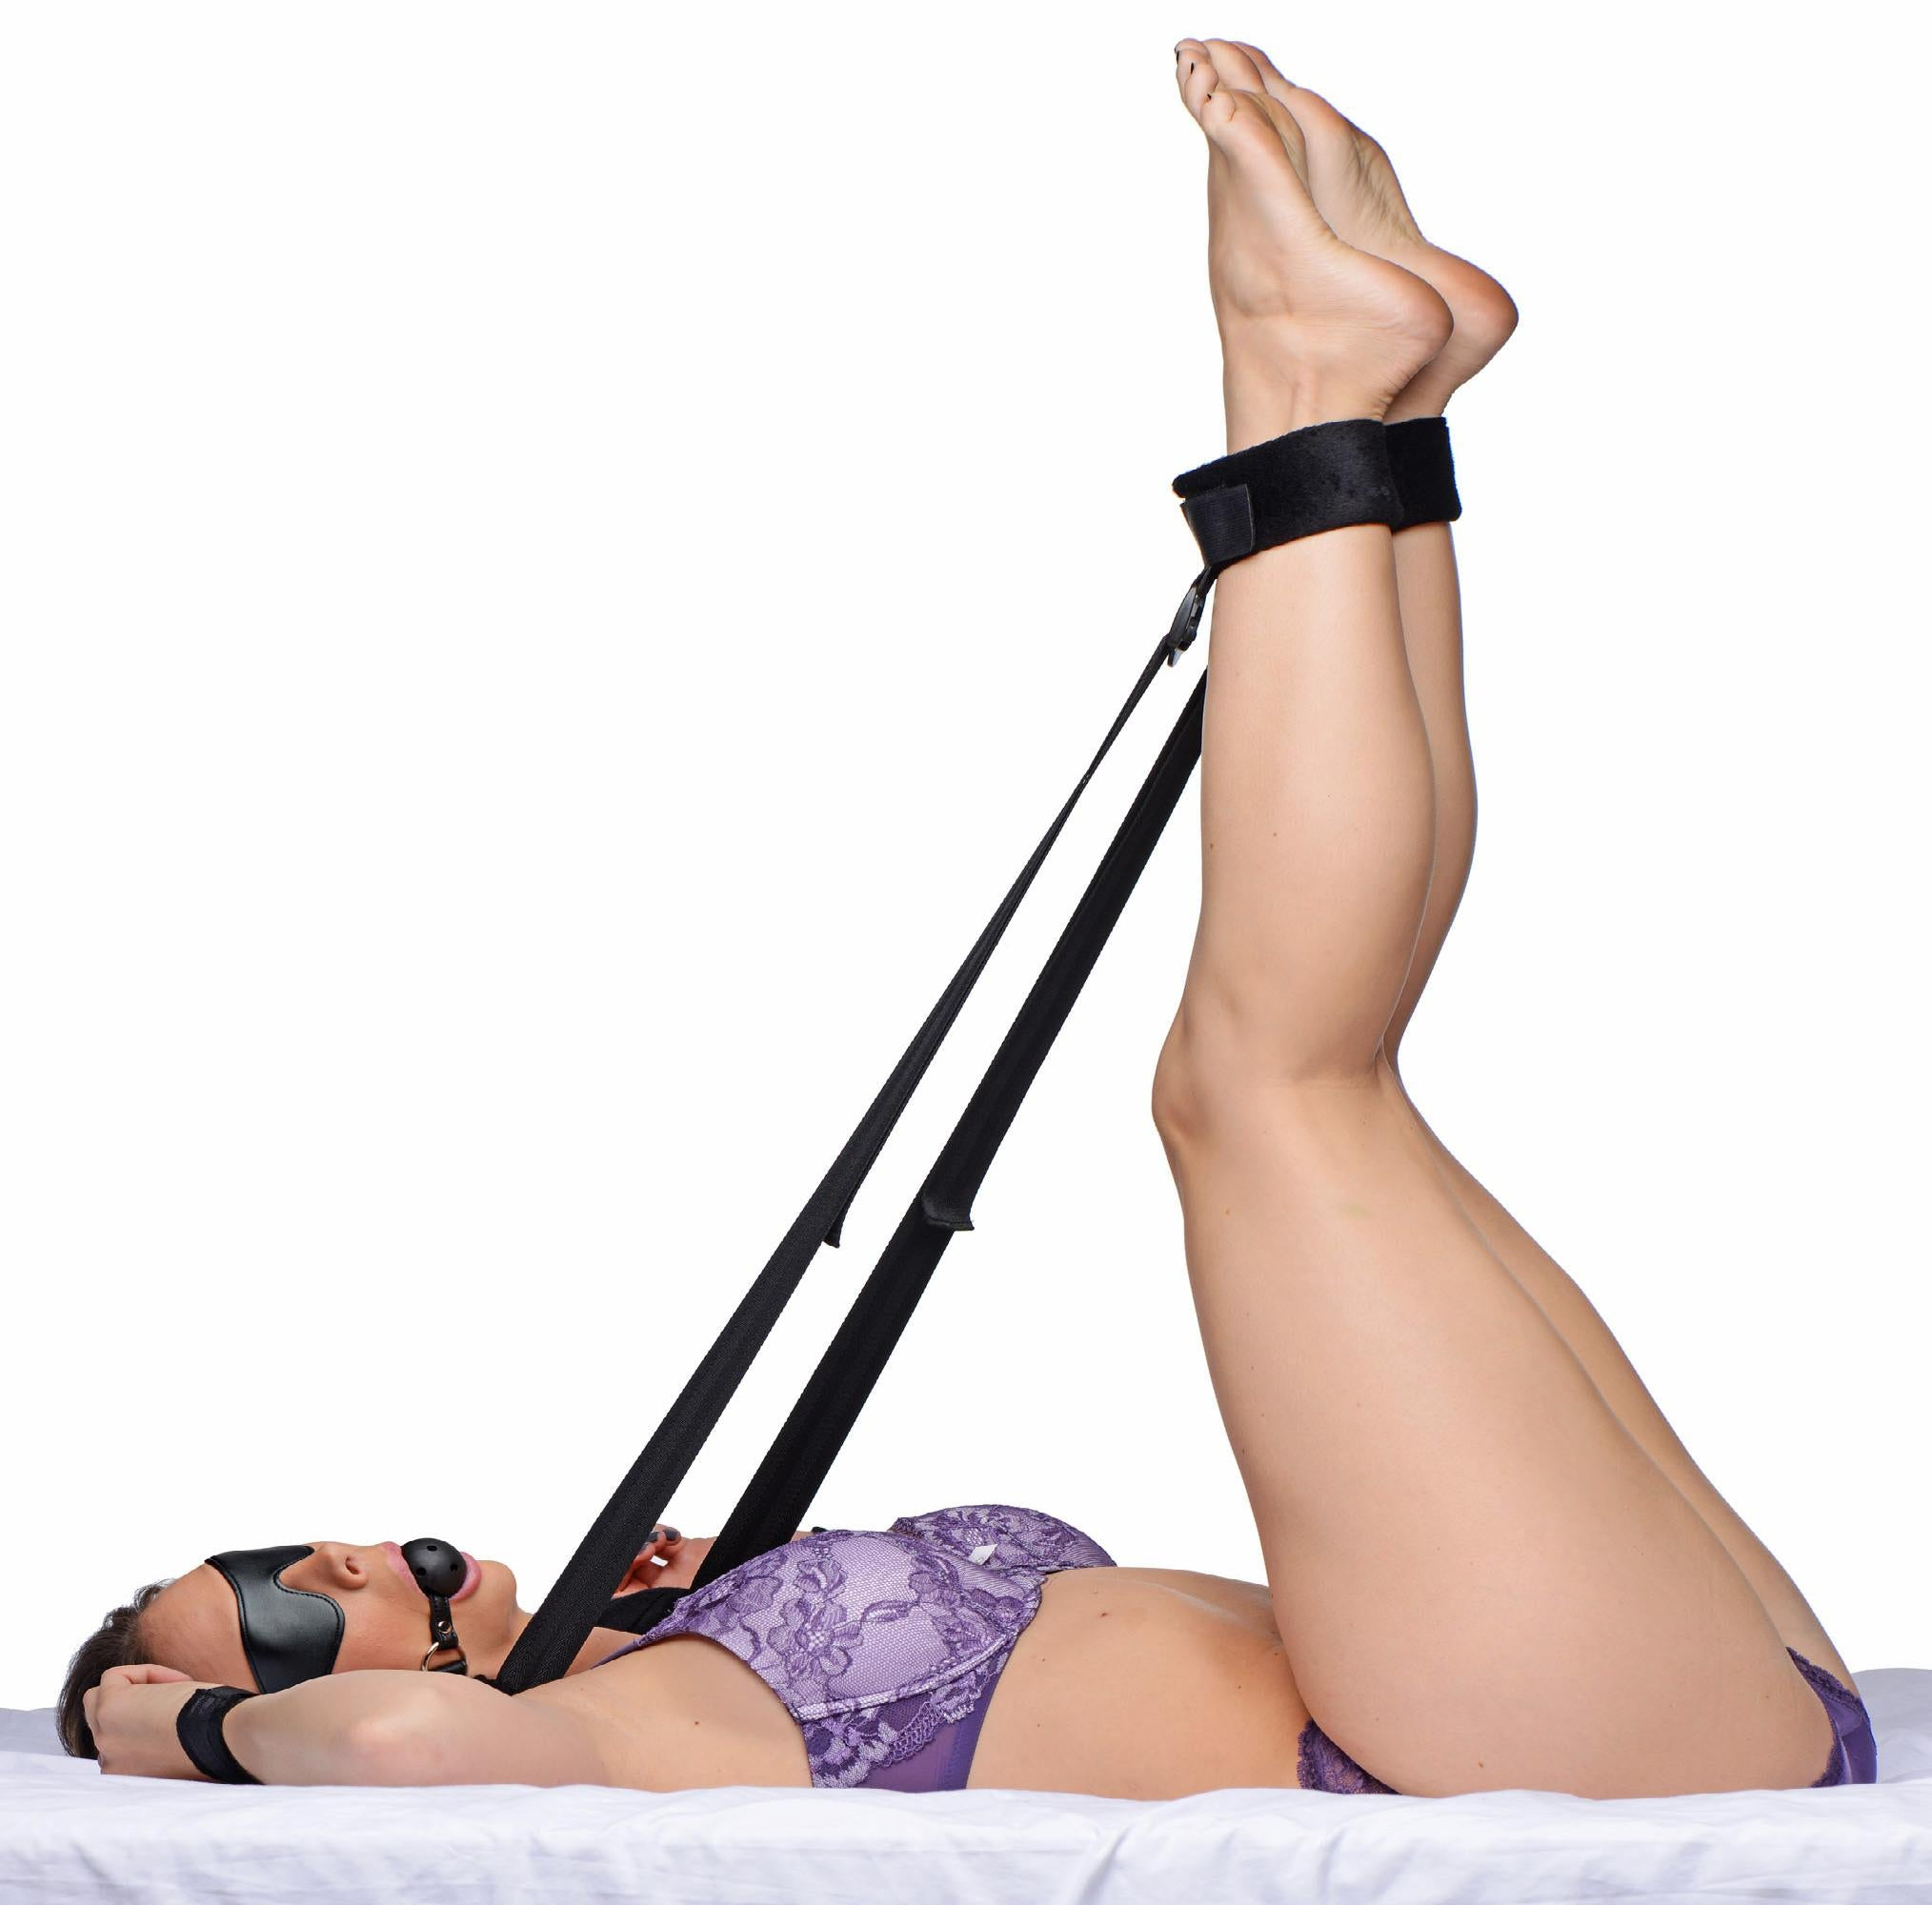 Leg Strap Positioning Kit with Blindfold and Ball Gag